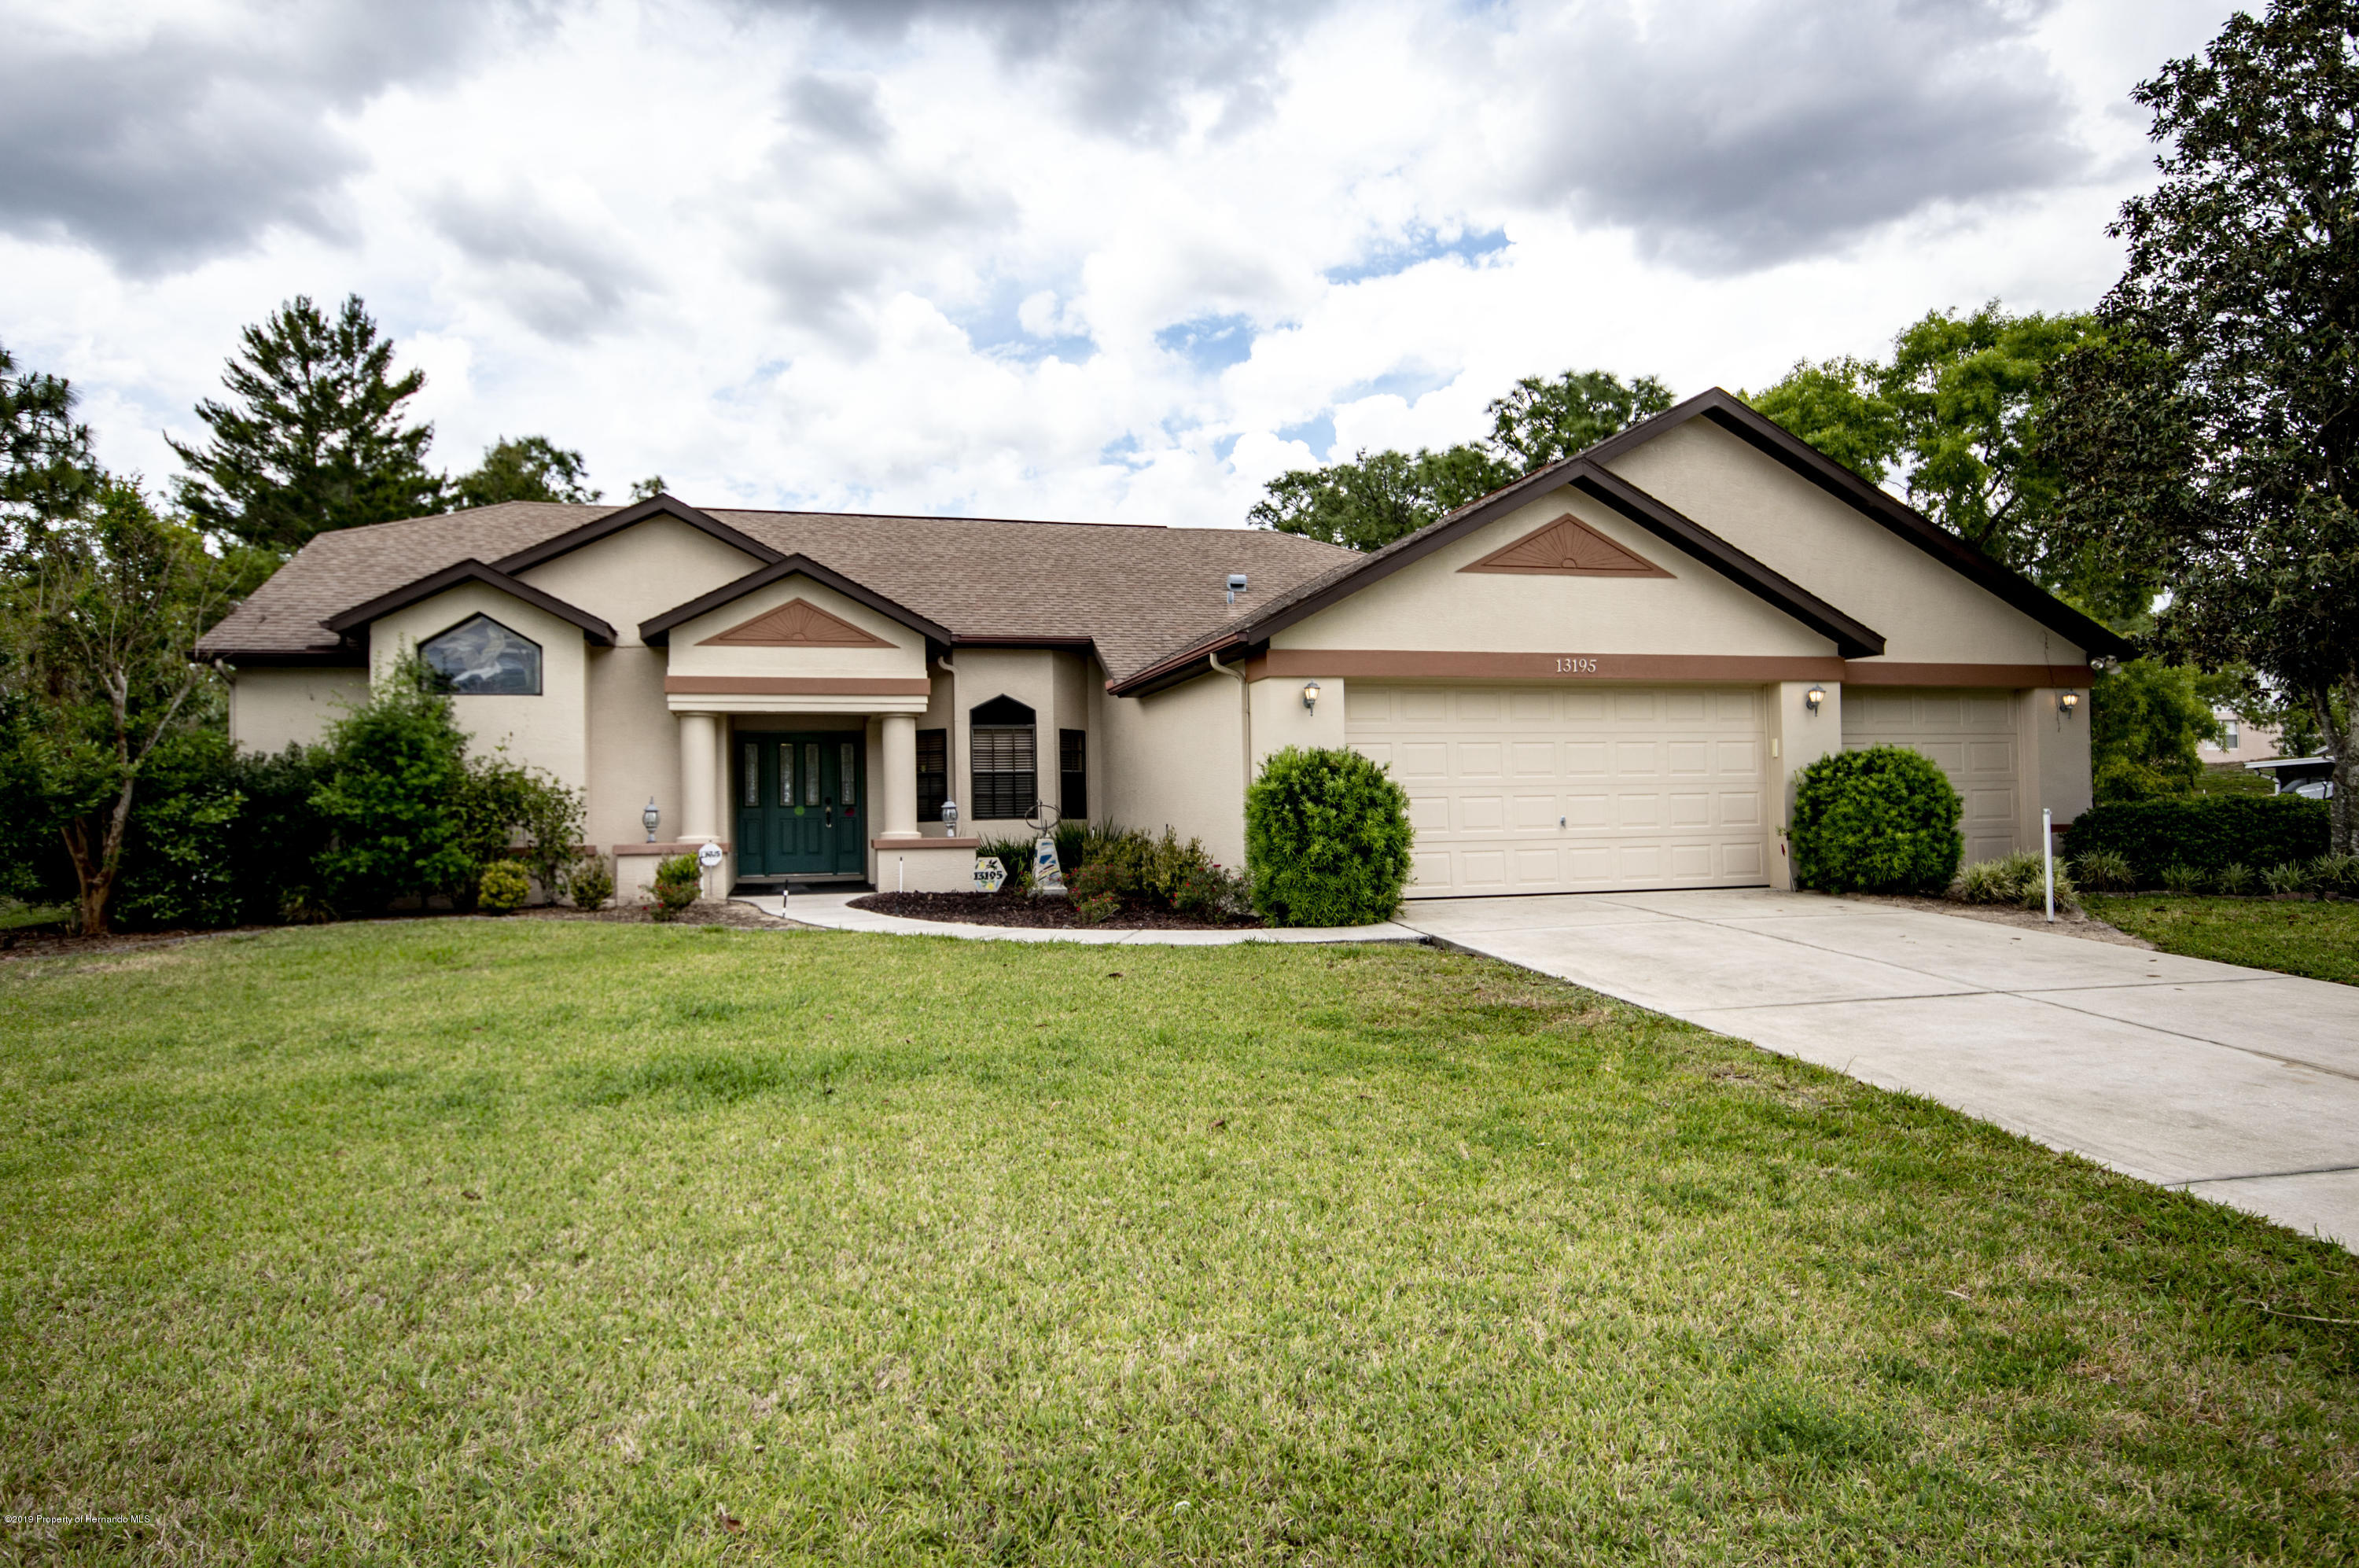 13195 Curry Drive, Spring Hill, Florida 34609, 3 Bedrooms Bedrooms, ,2 BathroomsBathrooms,Residential,For Sale,Curry,2200604